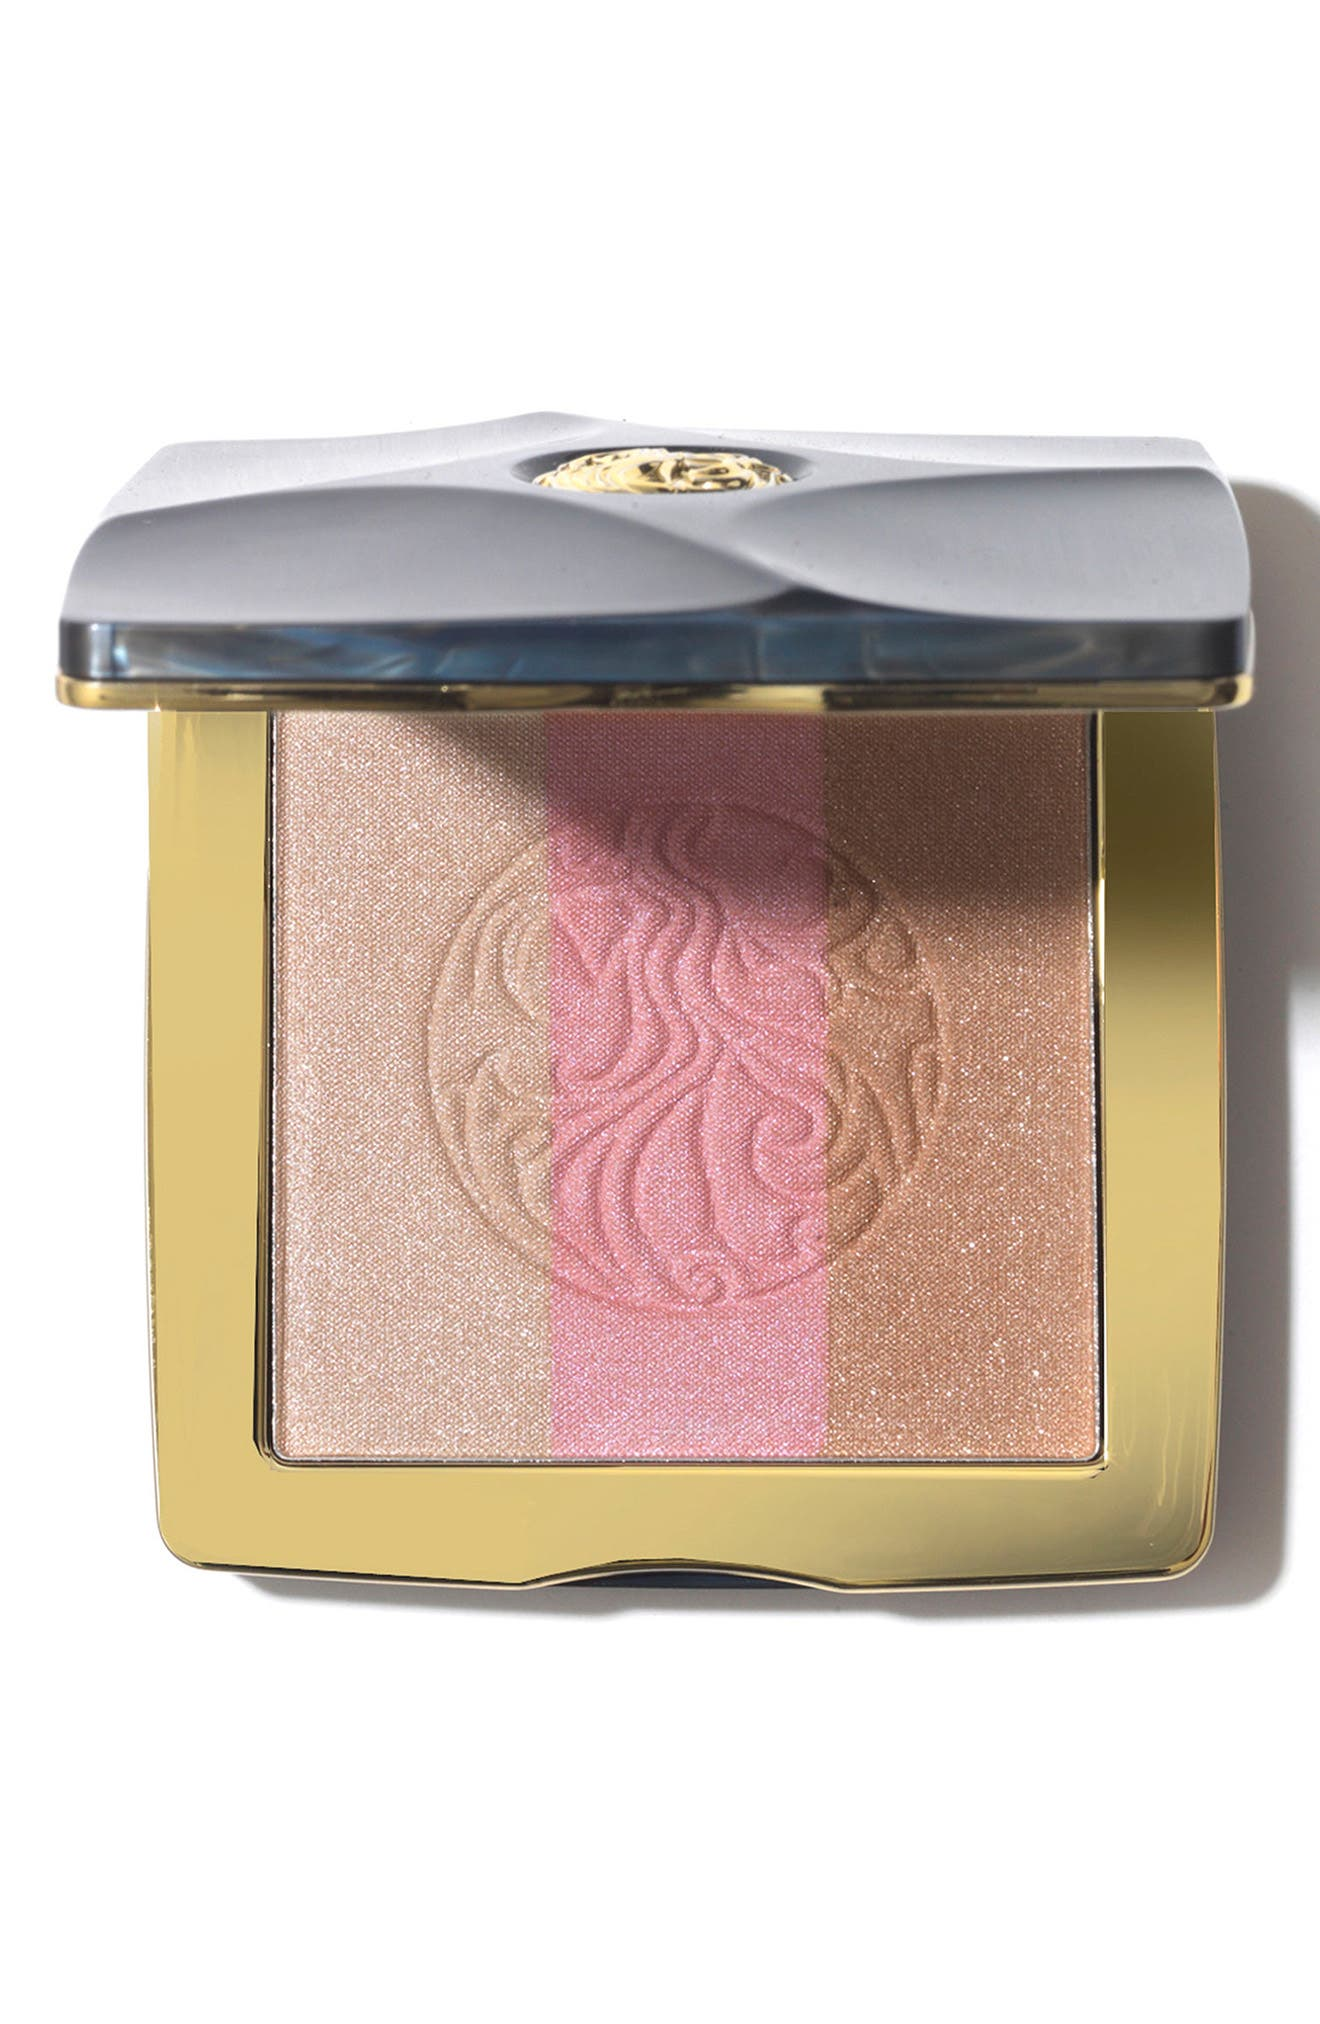 SPACE.NK.apothecary Oribe Illuminating Face Palette,                             Main thumbnail 1, color,                             Moonlit